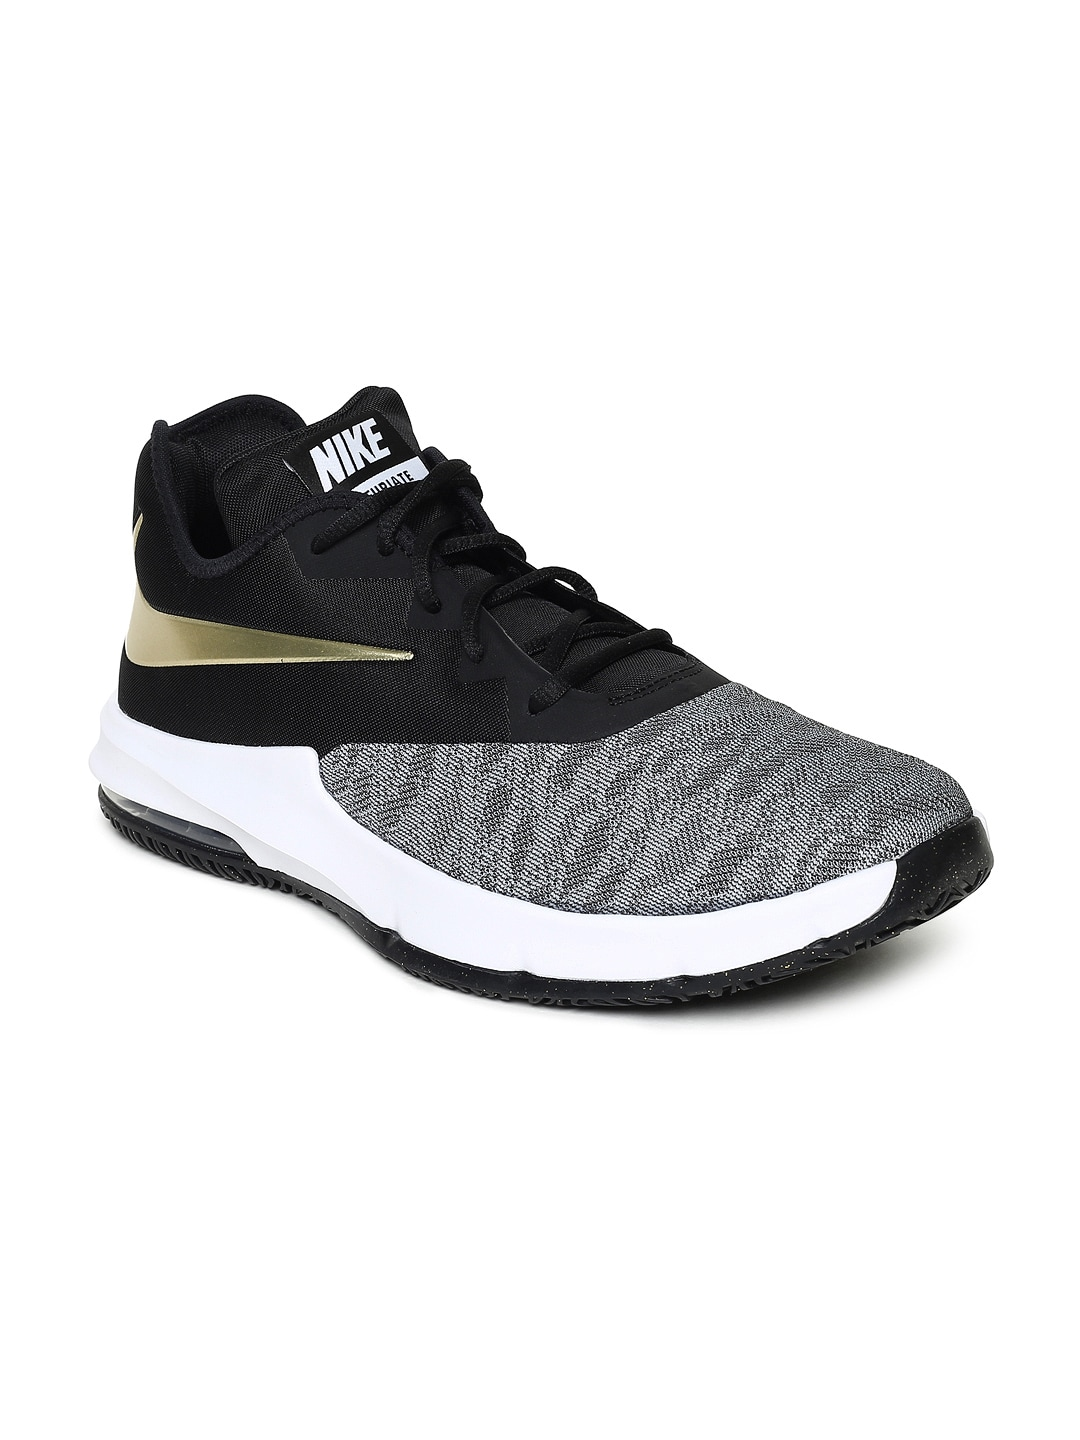 47d09b5955d Nike Air Shoe - Buy Nike Air Shoe online in India